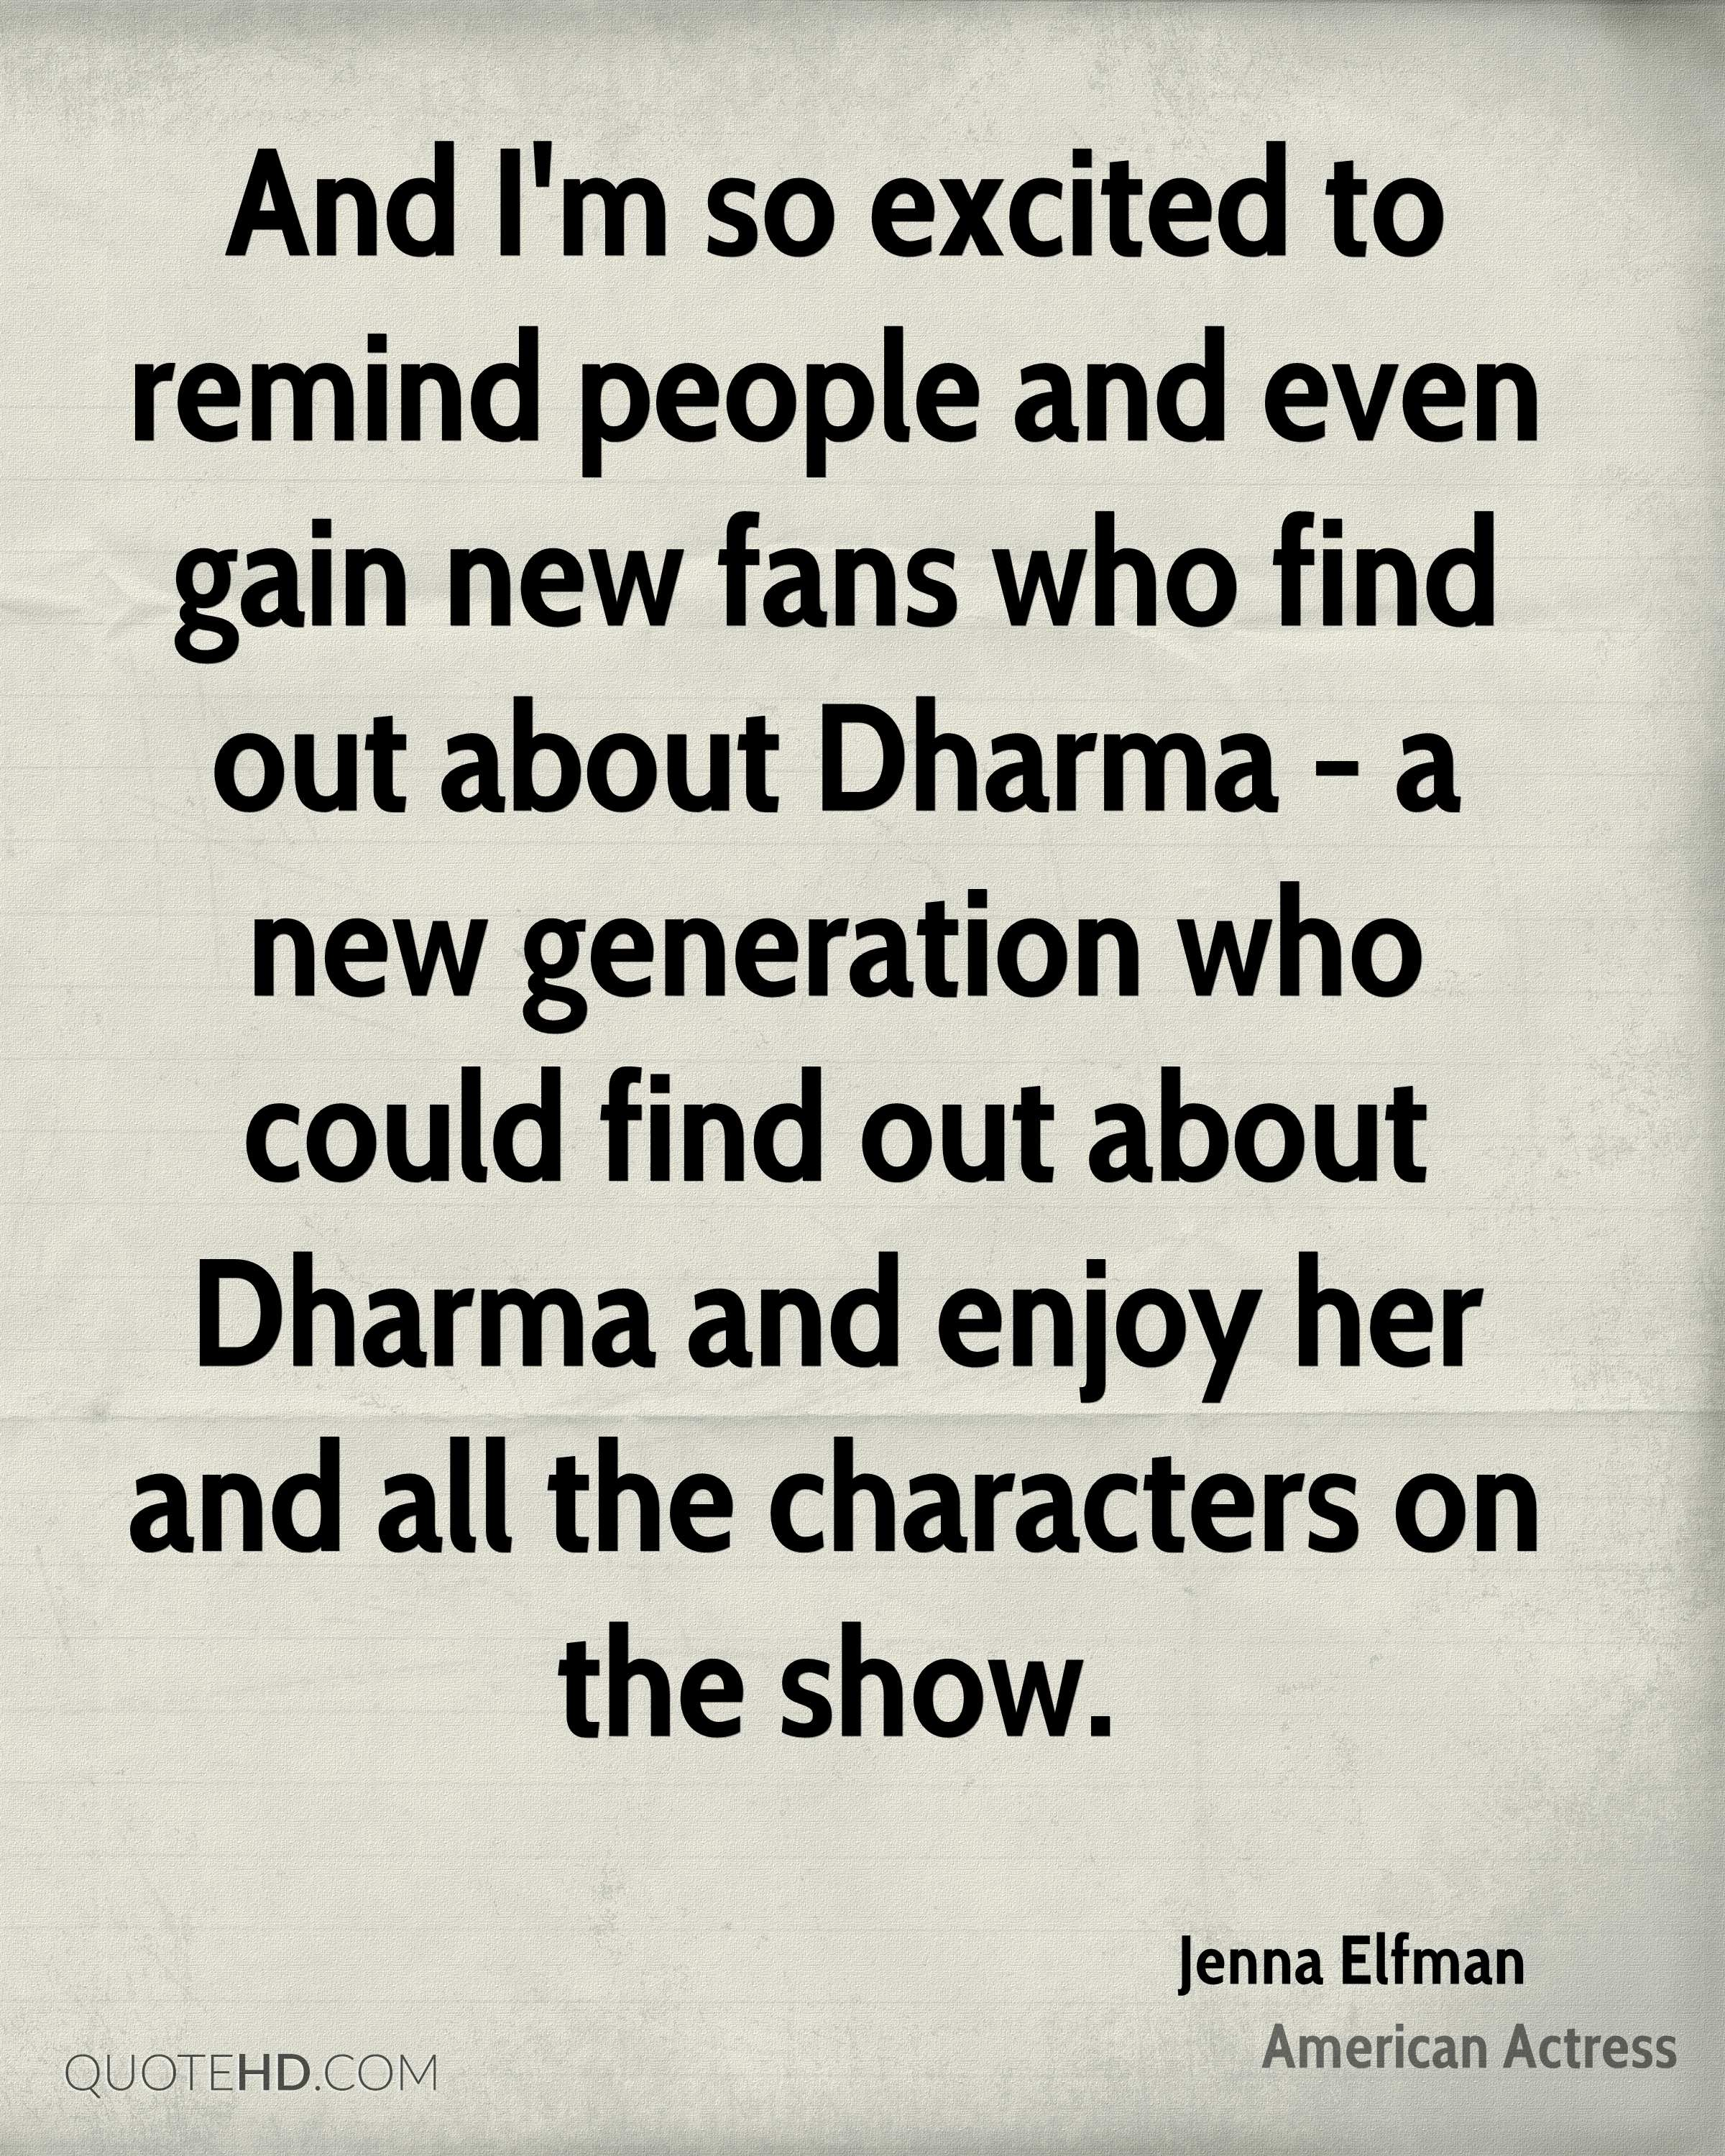 And I'm so excited to remind people and even gain new fans who find out about Dharma - a new generation who could find out about Dharma and enjoy her and all the characters on the show.